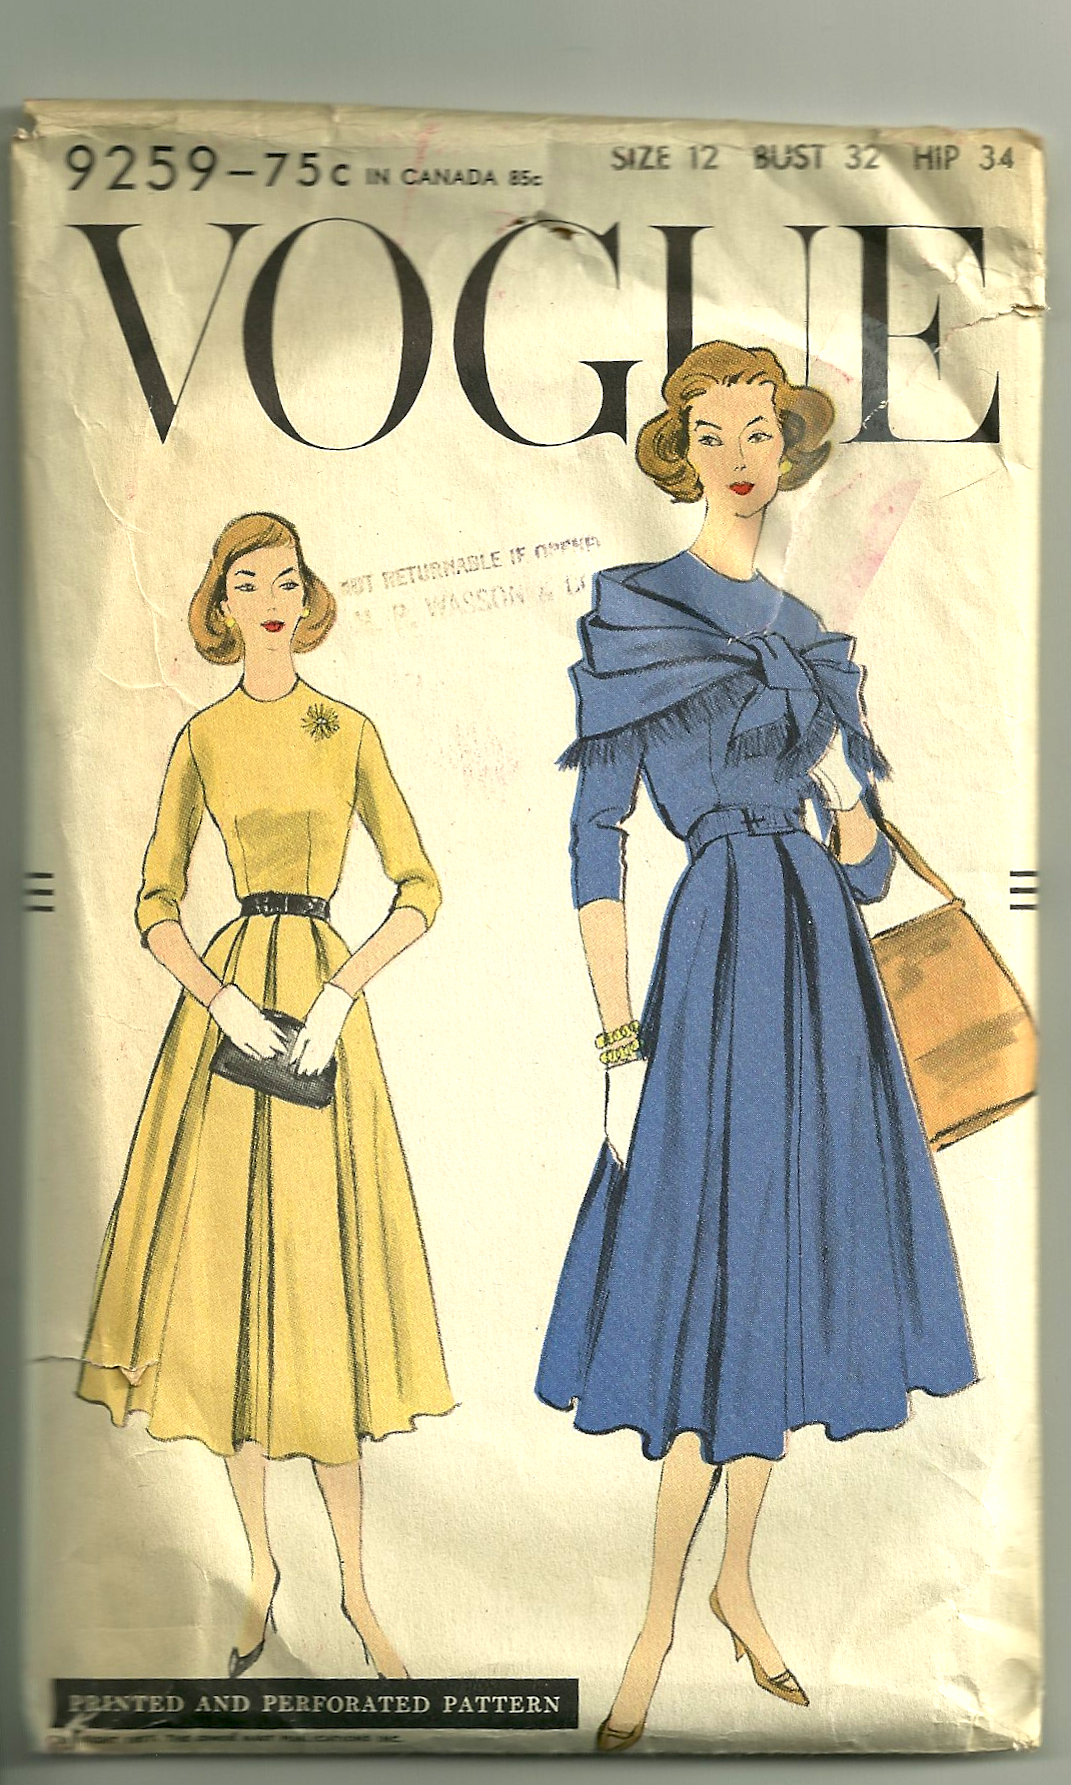 Unprinted Patterns From The 1950s Fiftydresses